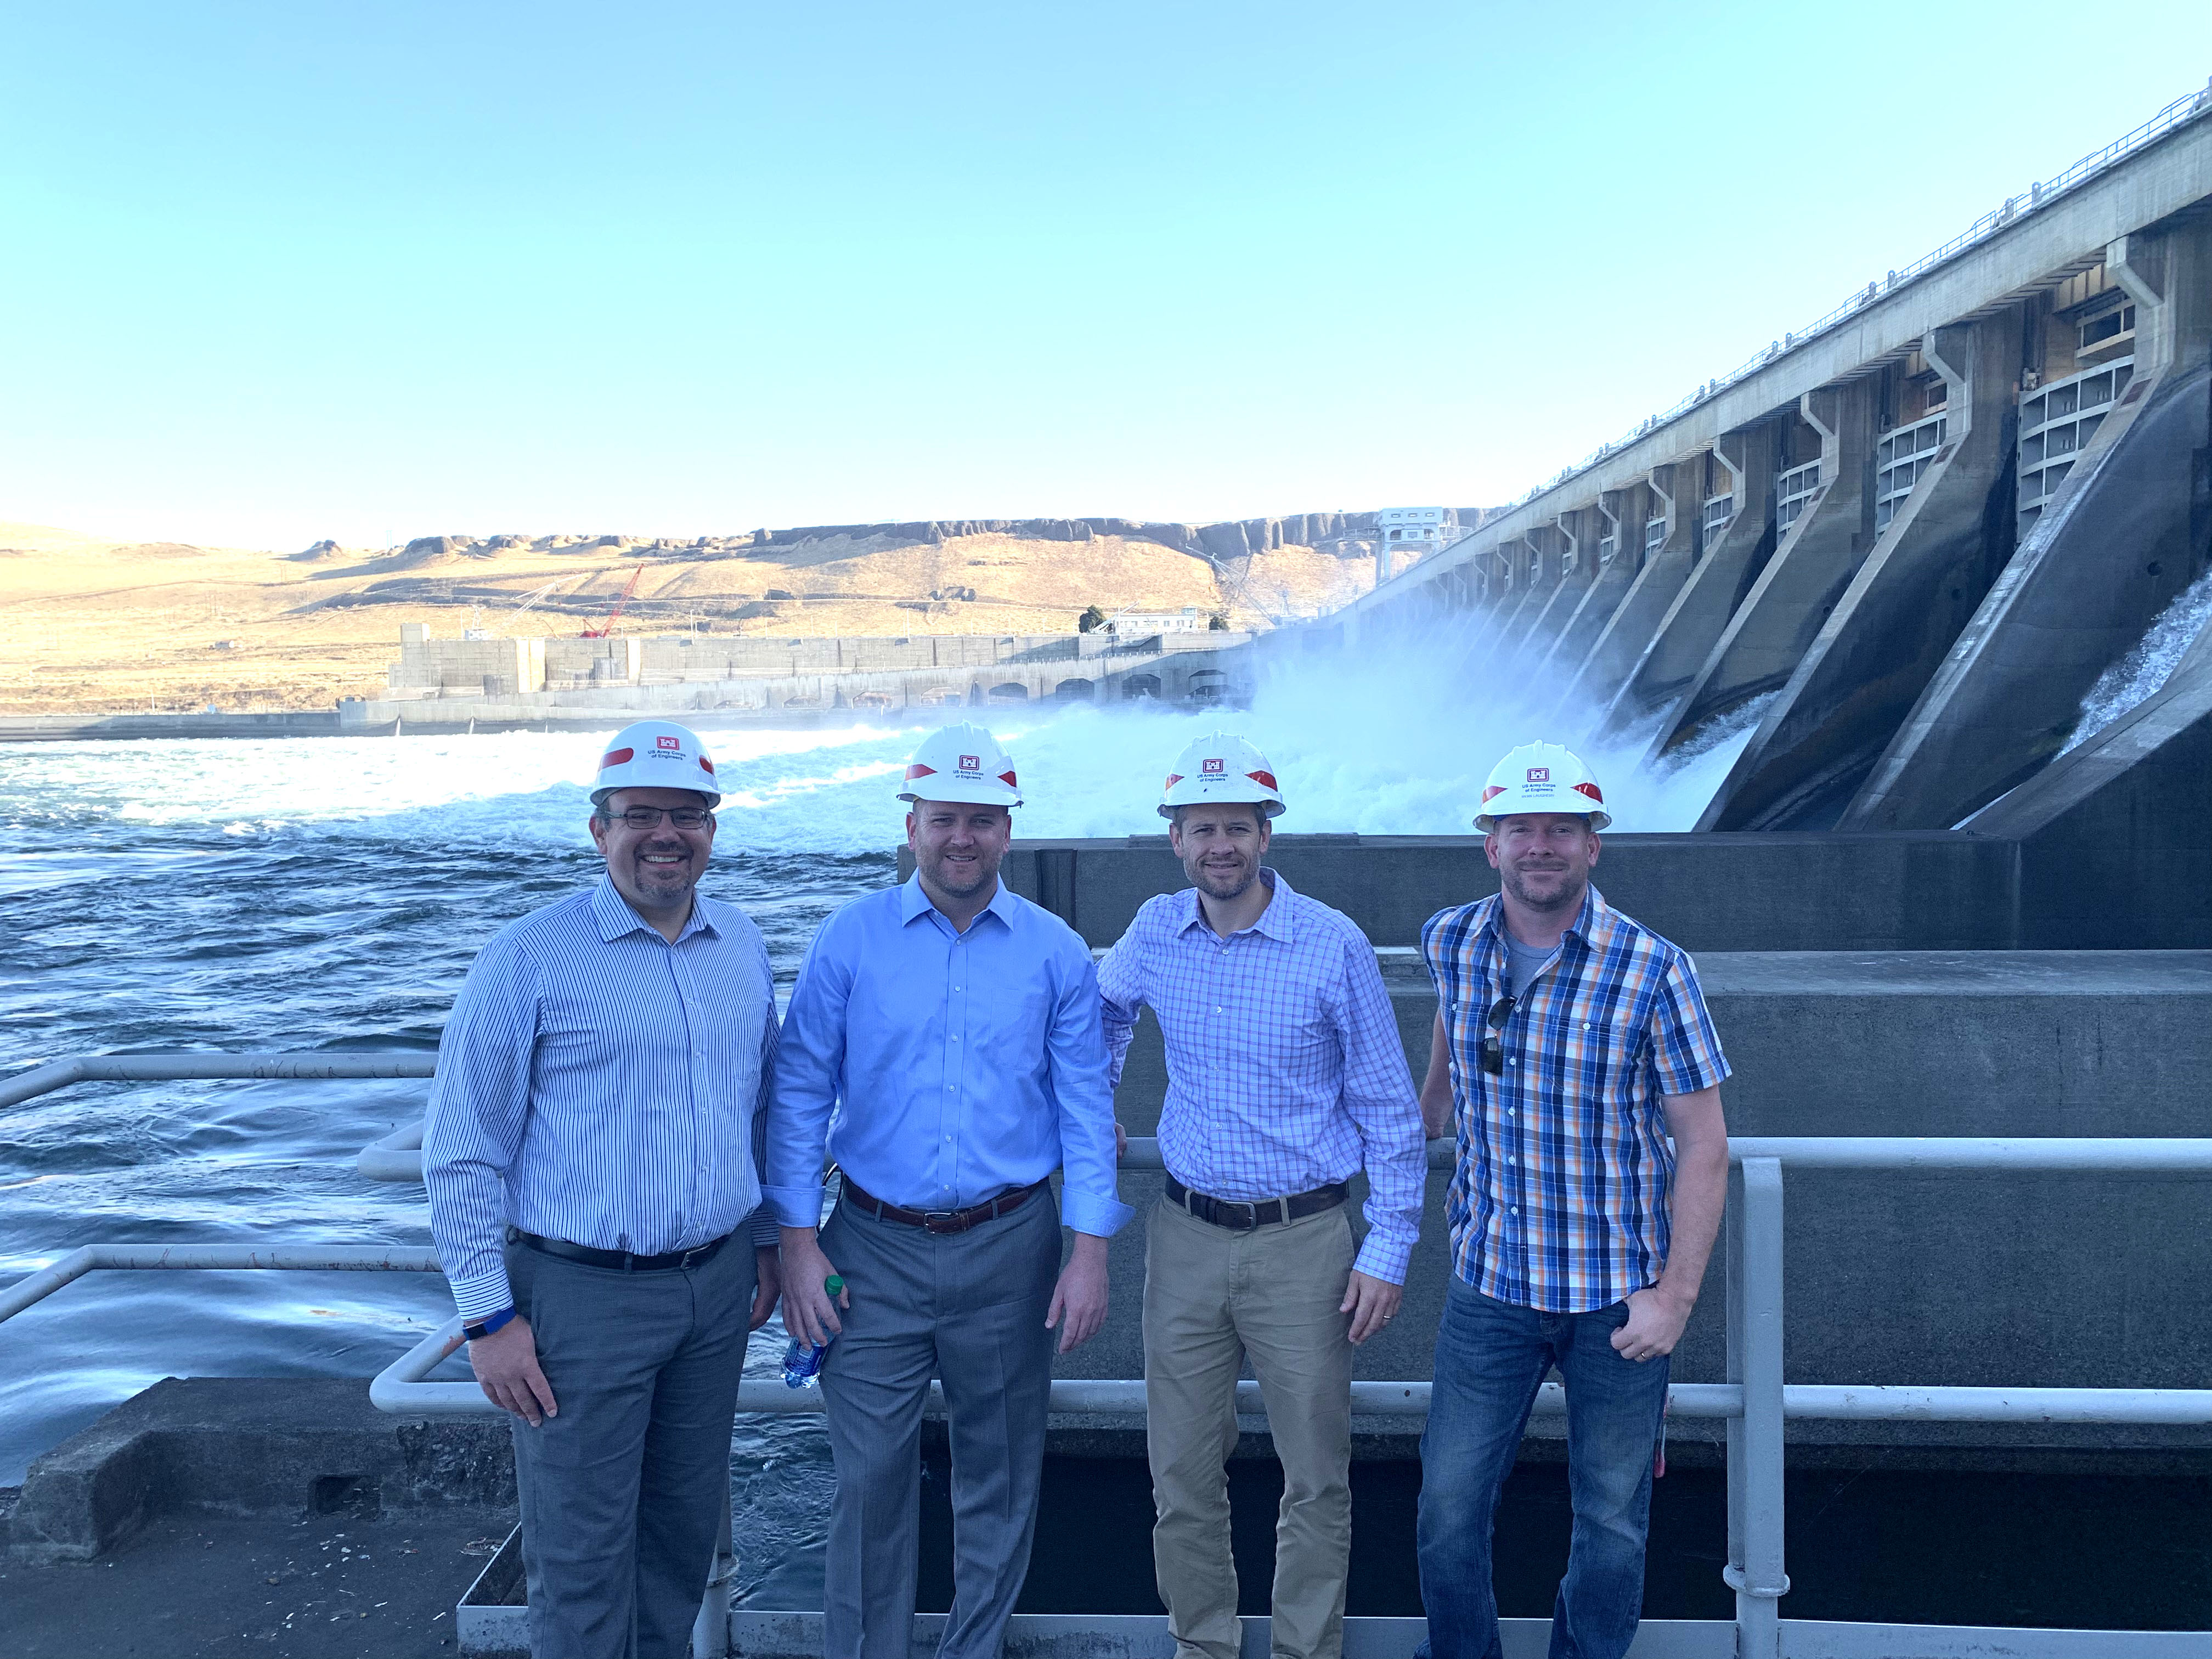 Four Men stand in front of a large dam